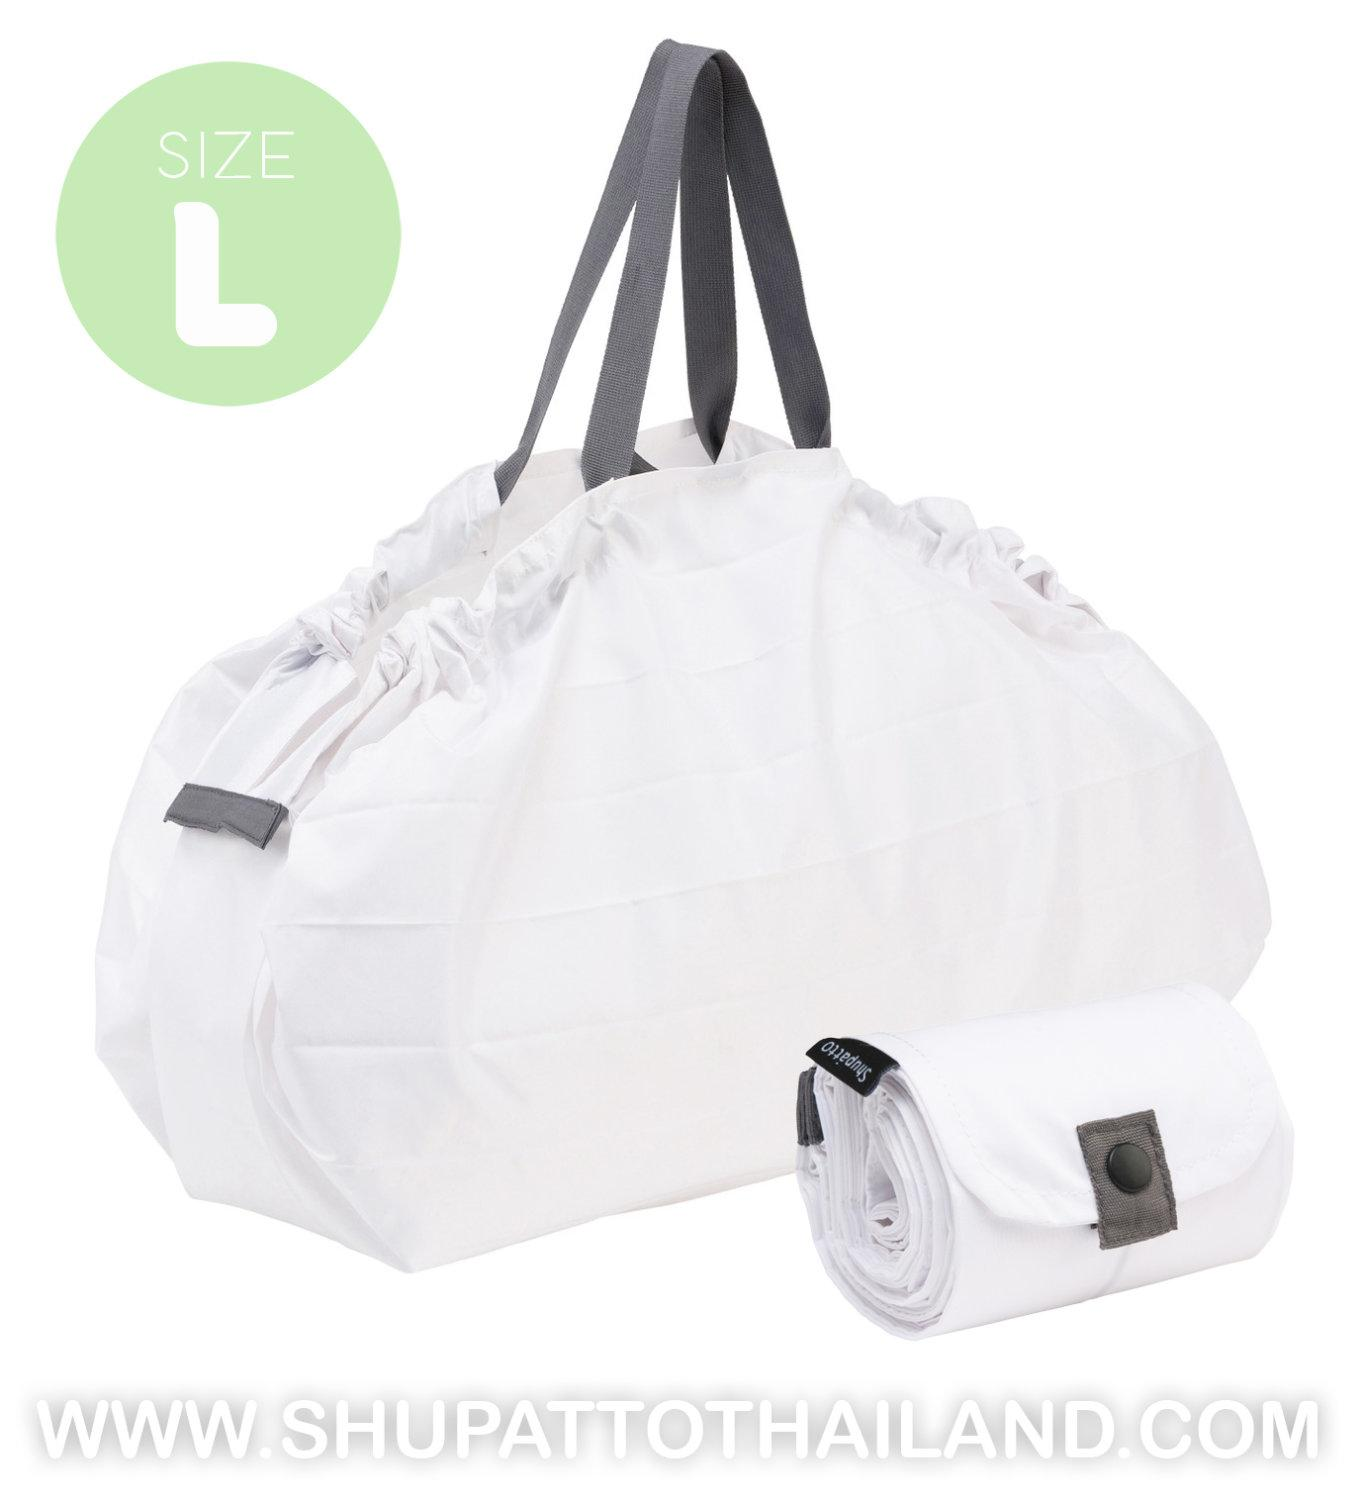 Shupatto Compact Bag - Tote Large - White